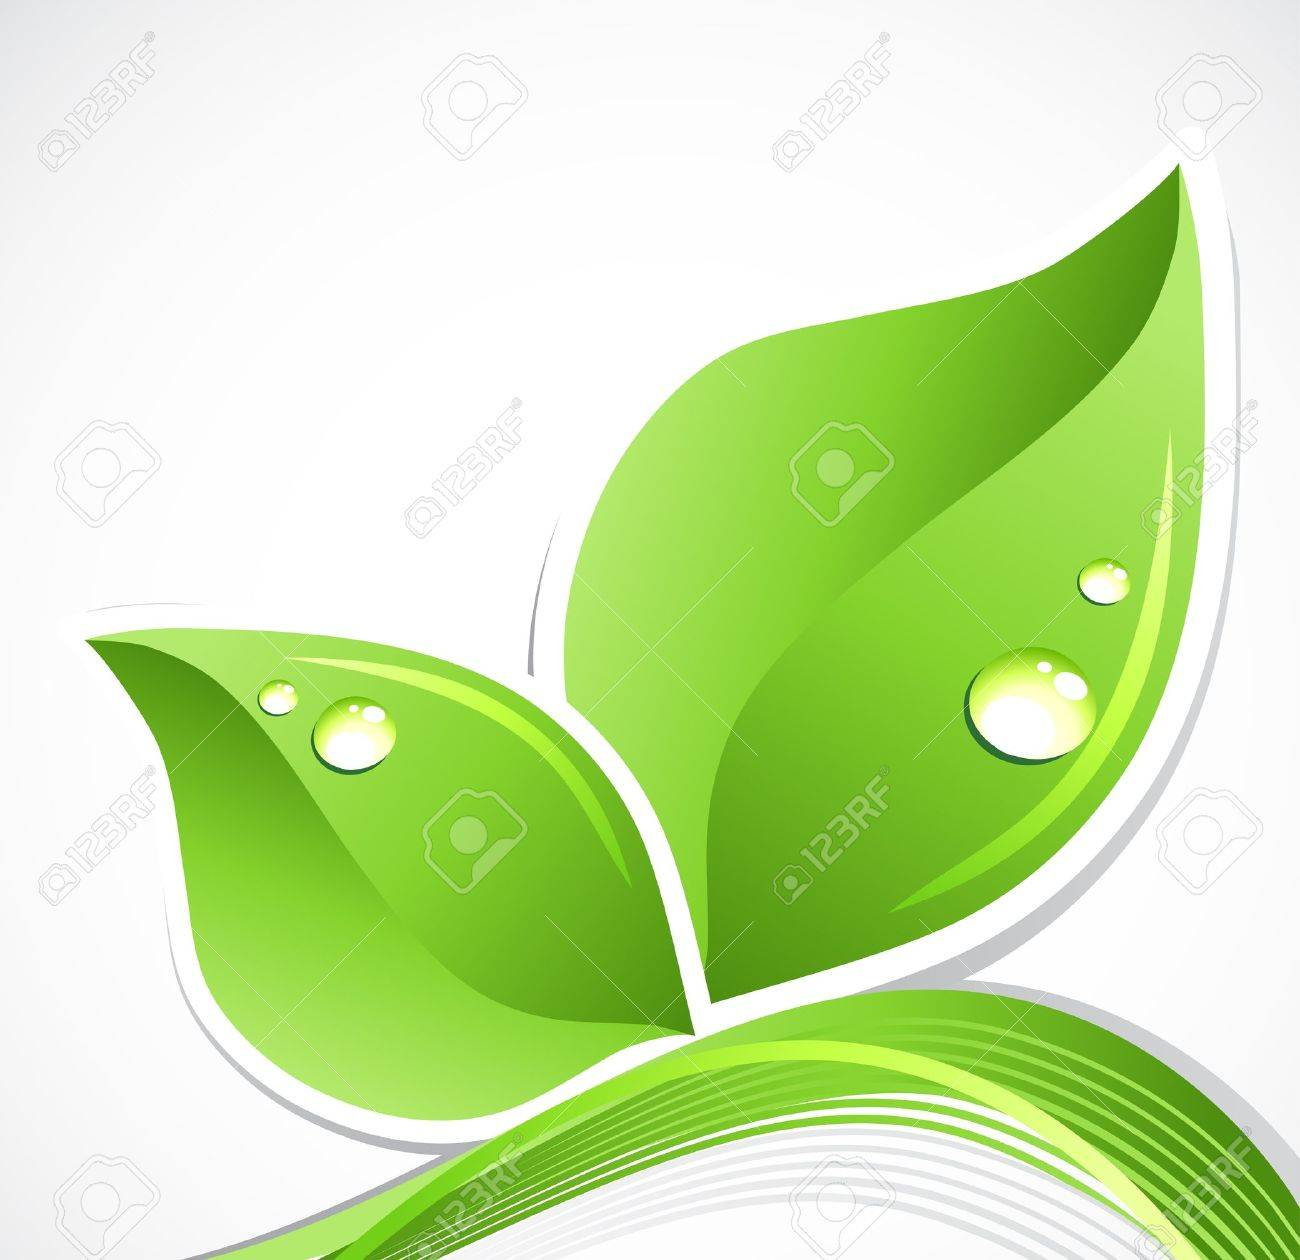 Green leaf with water droplets  art illustration Stock Vector - 15166324